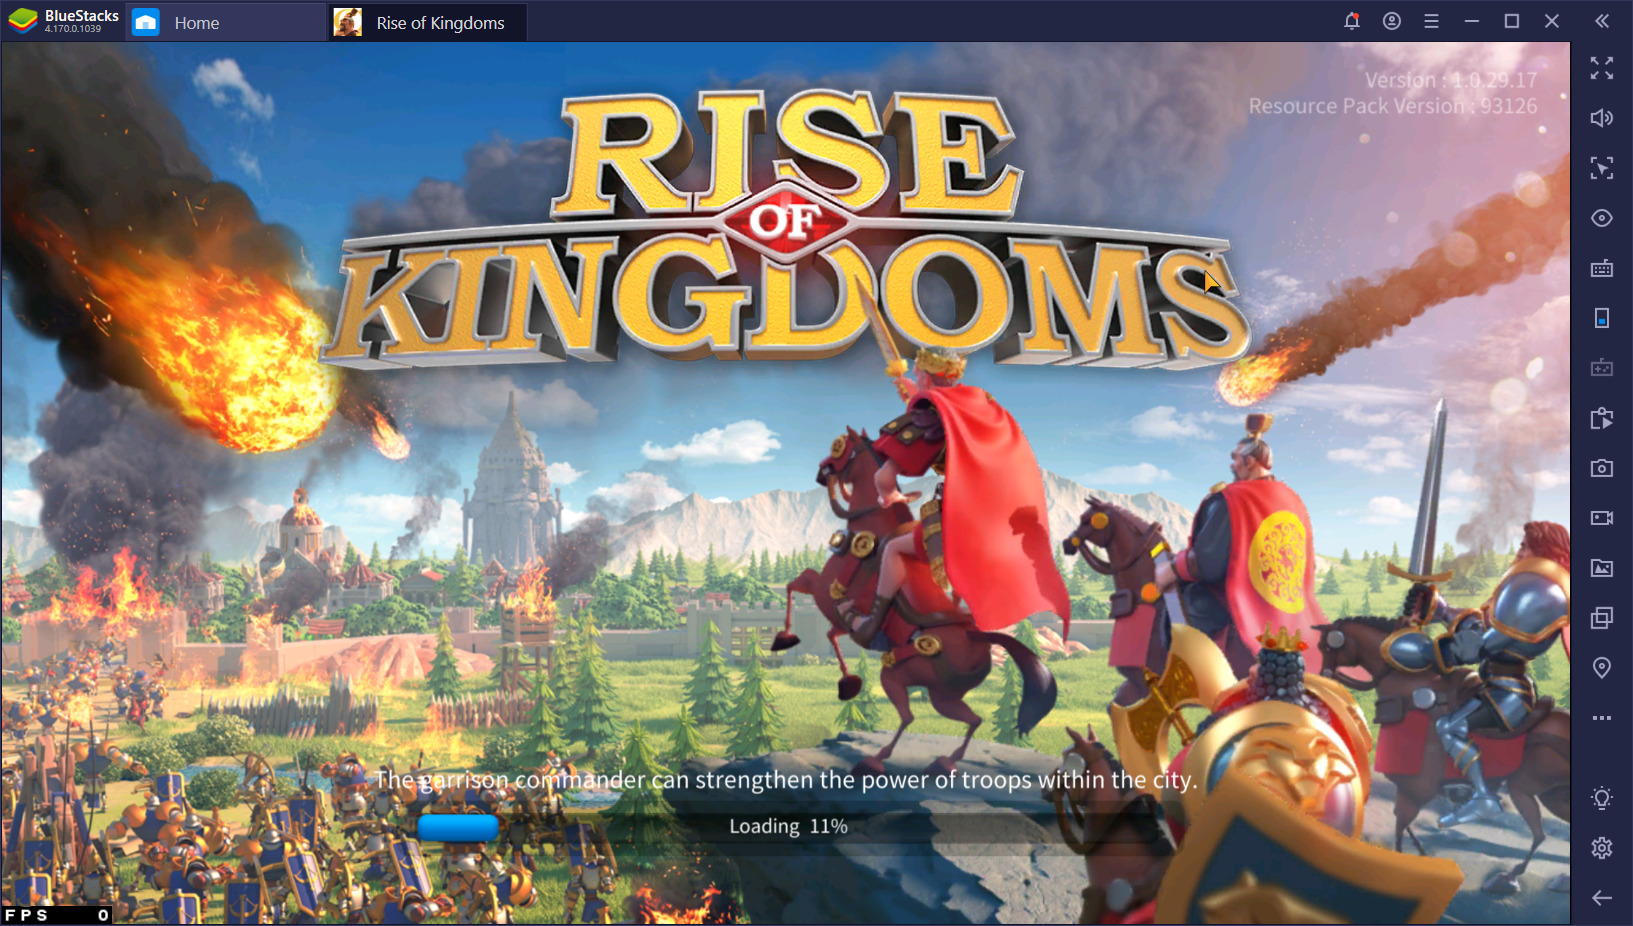 The Most Comprehensive Collection of Rise of Kingdoms Game Guides